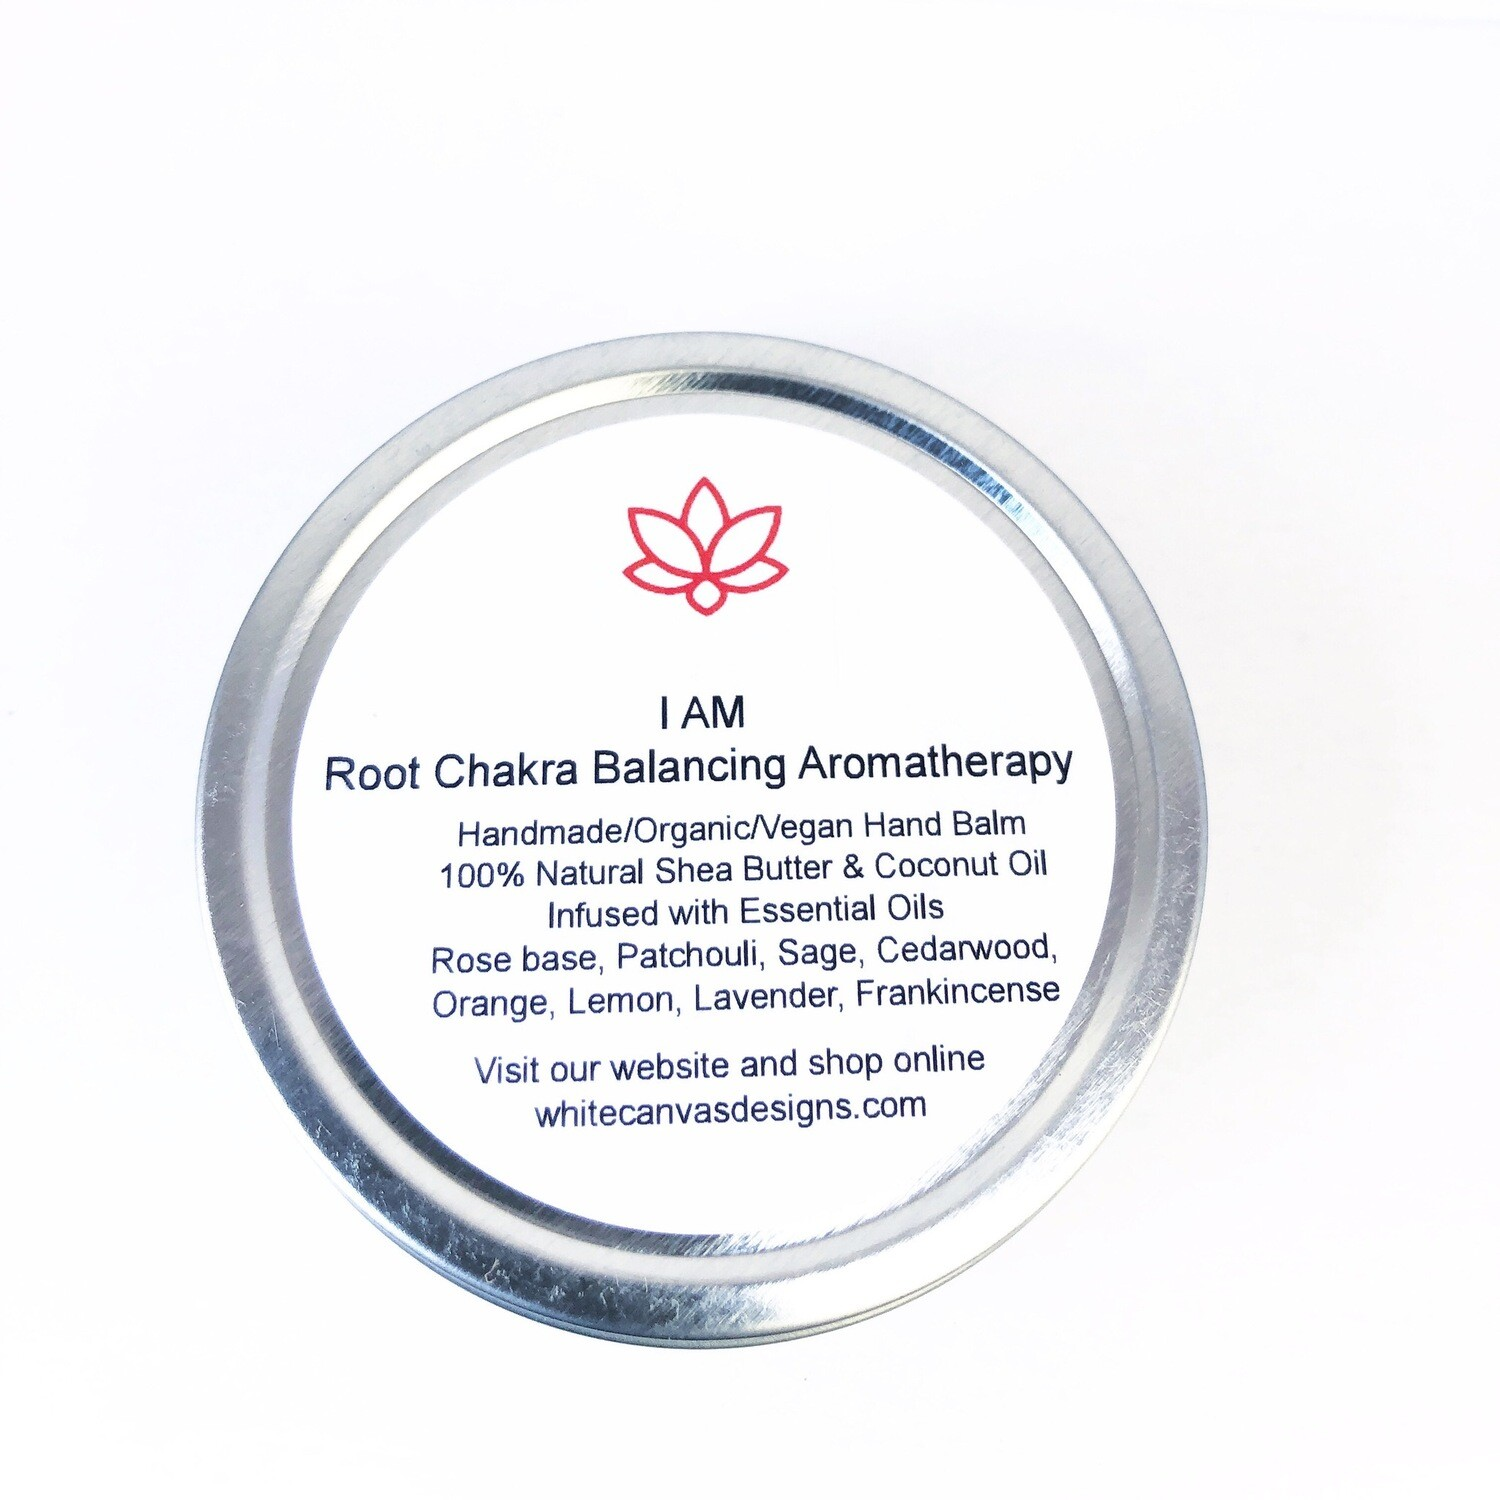 'I AM' Root Chakra Handmade/Organic/Vegan Hand Balm 100% Natural Shea Butter & Coconut Oil Infused with Essential Oils